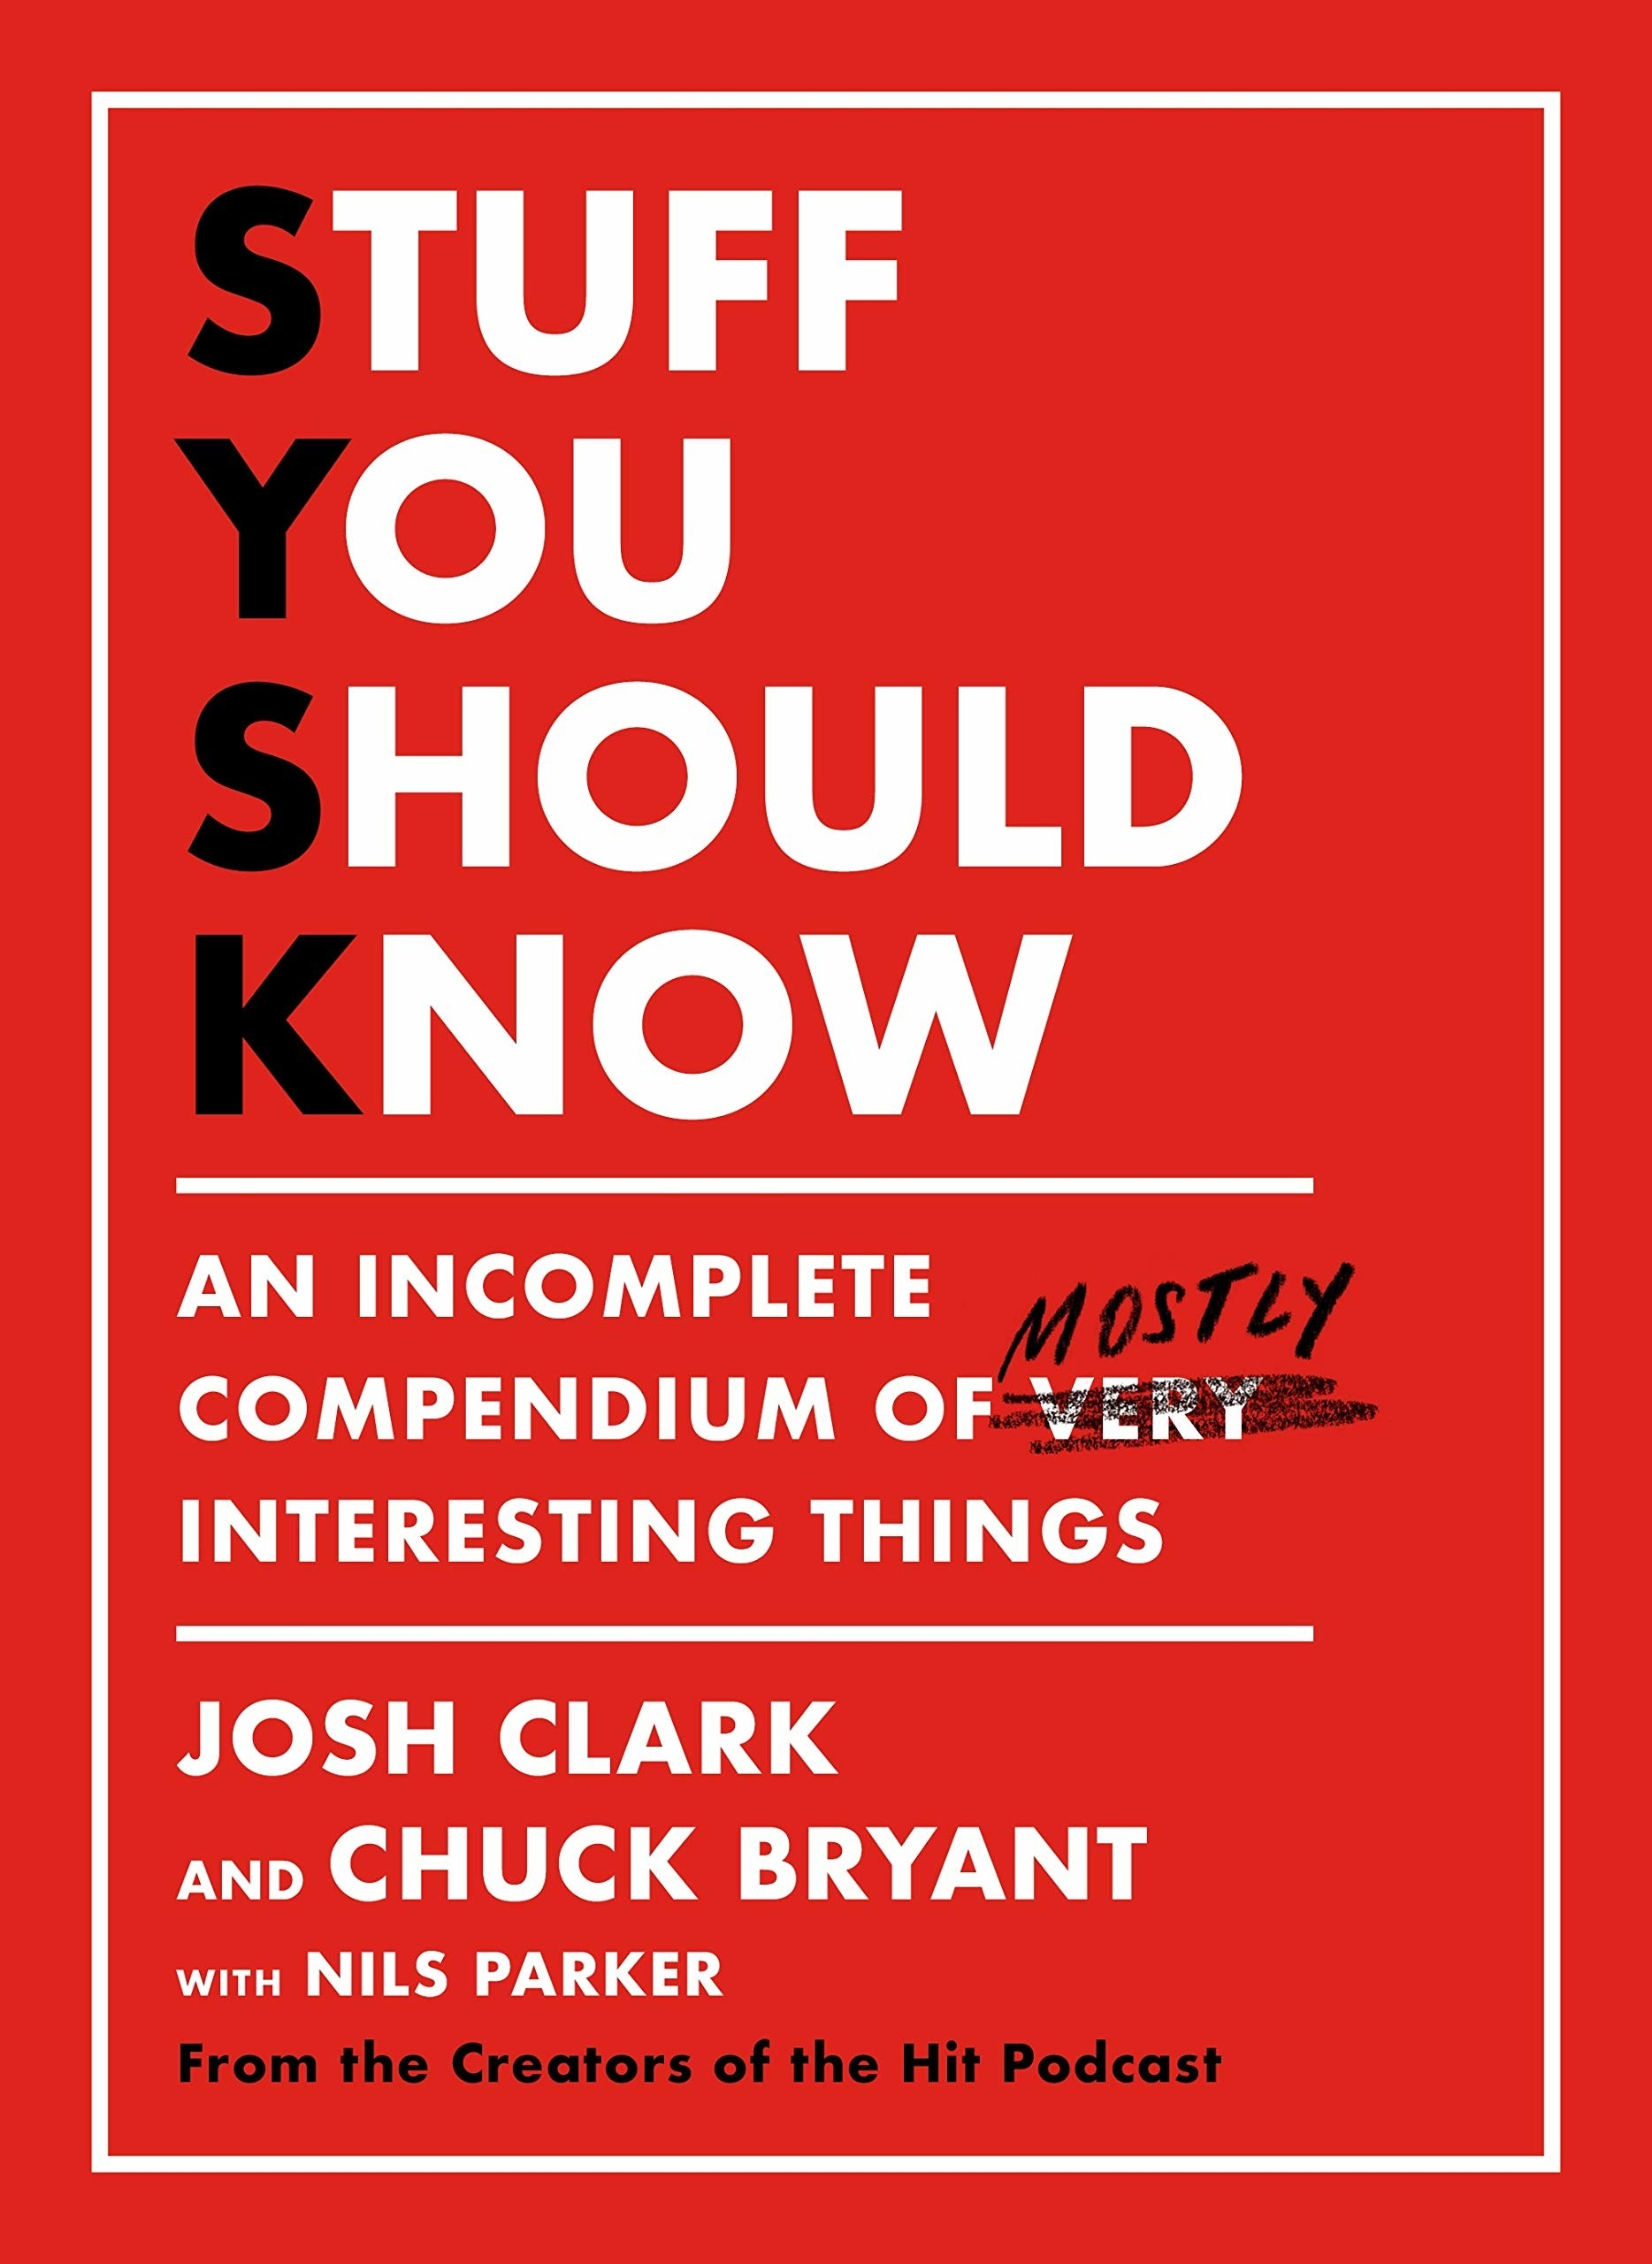 the cover of the book that says stuff you should know, an incomplete compendium of very crossed out, mostly interesting things.